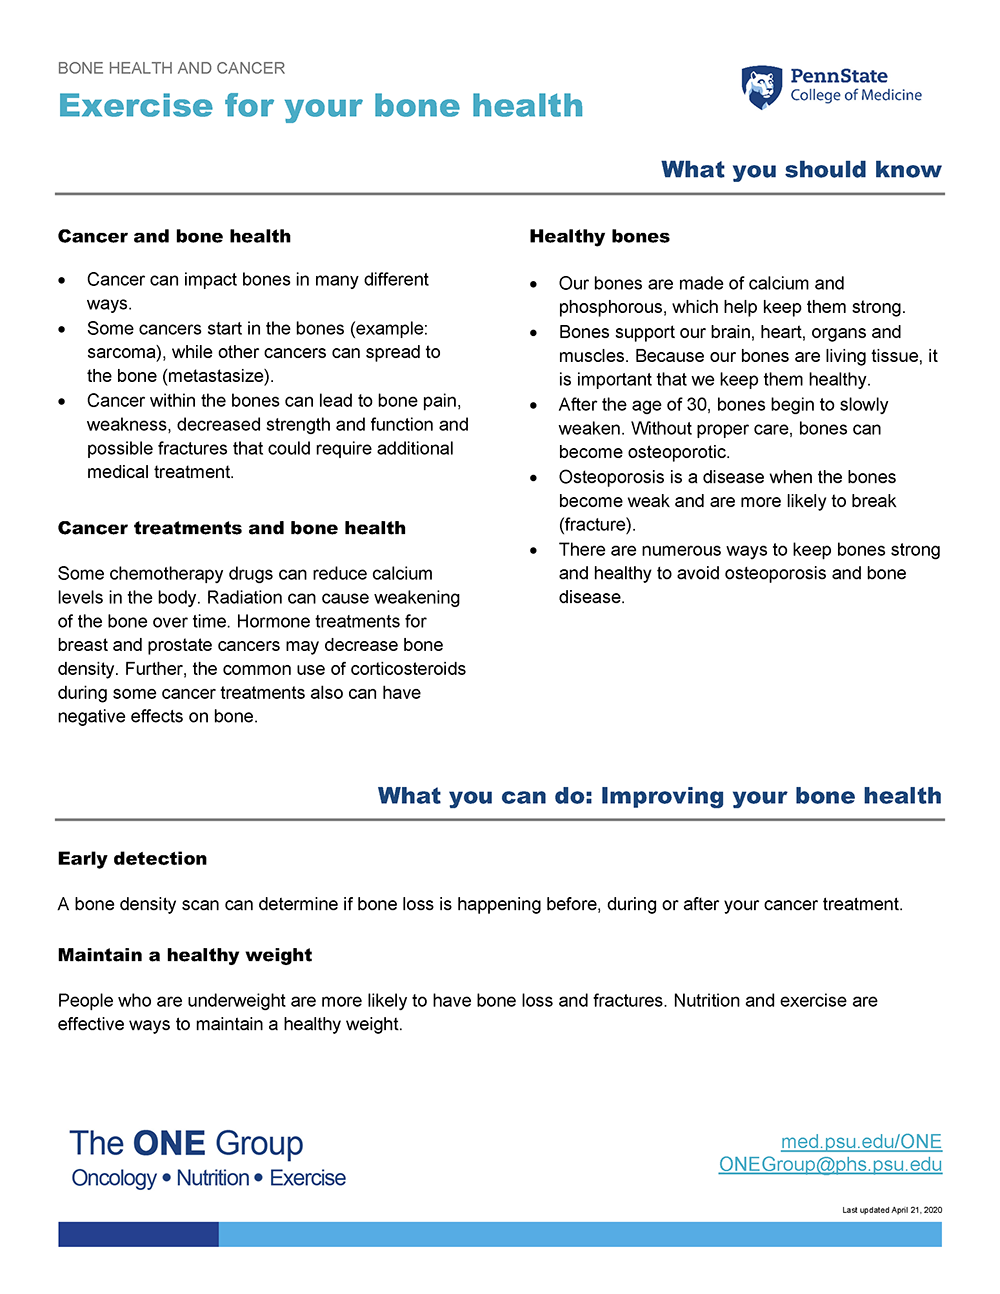 The exercise and bone health guide from The ONE Group includes the information on this page, formatted for print.